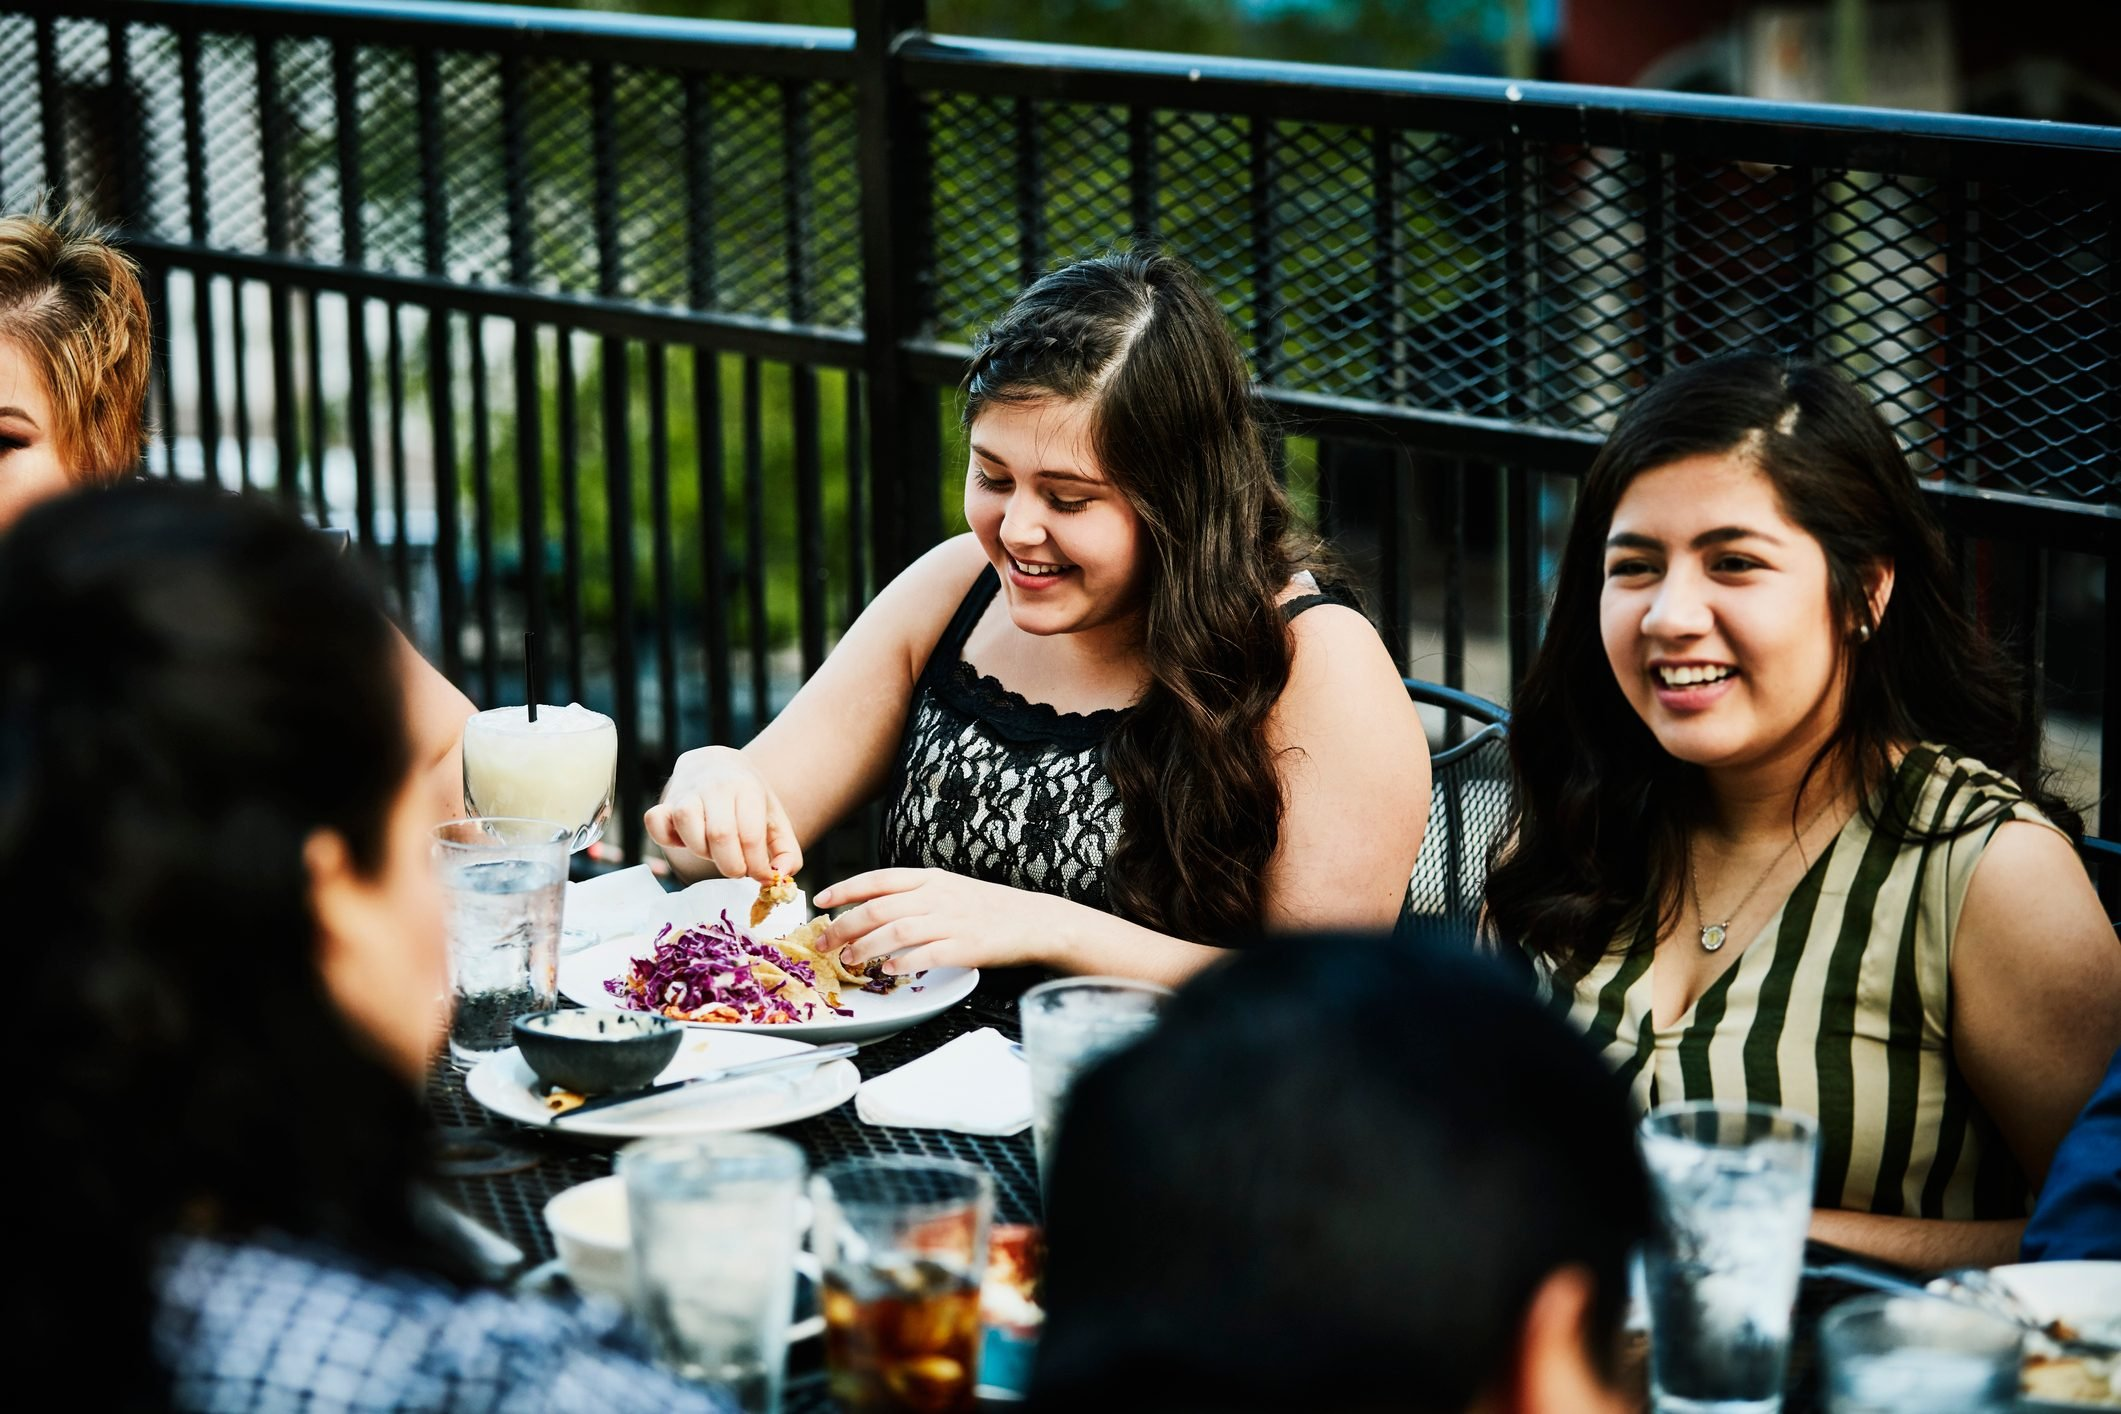 Laughing young women sharing a meal with family on restaurant deck